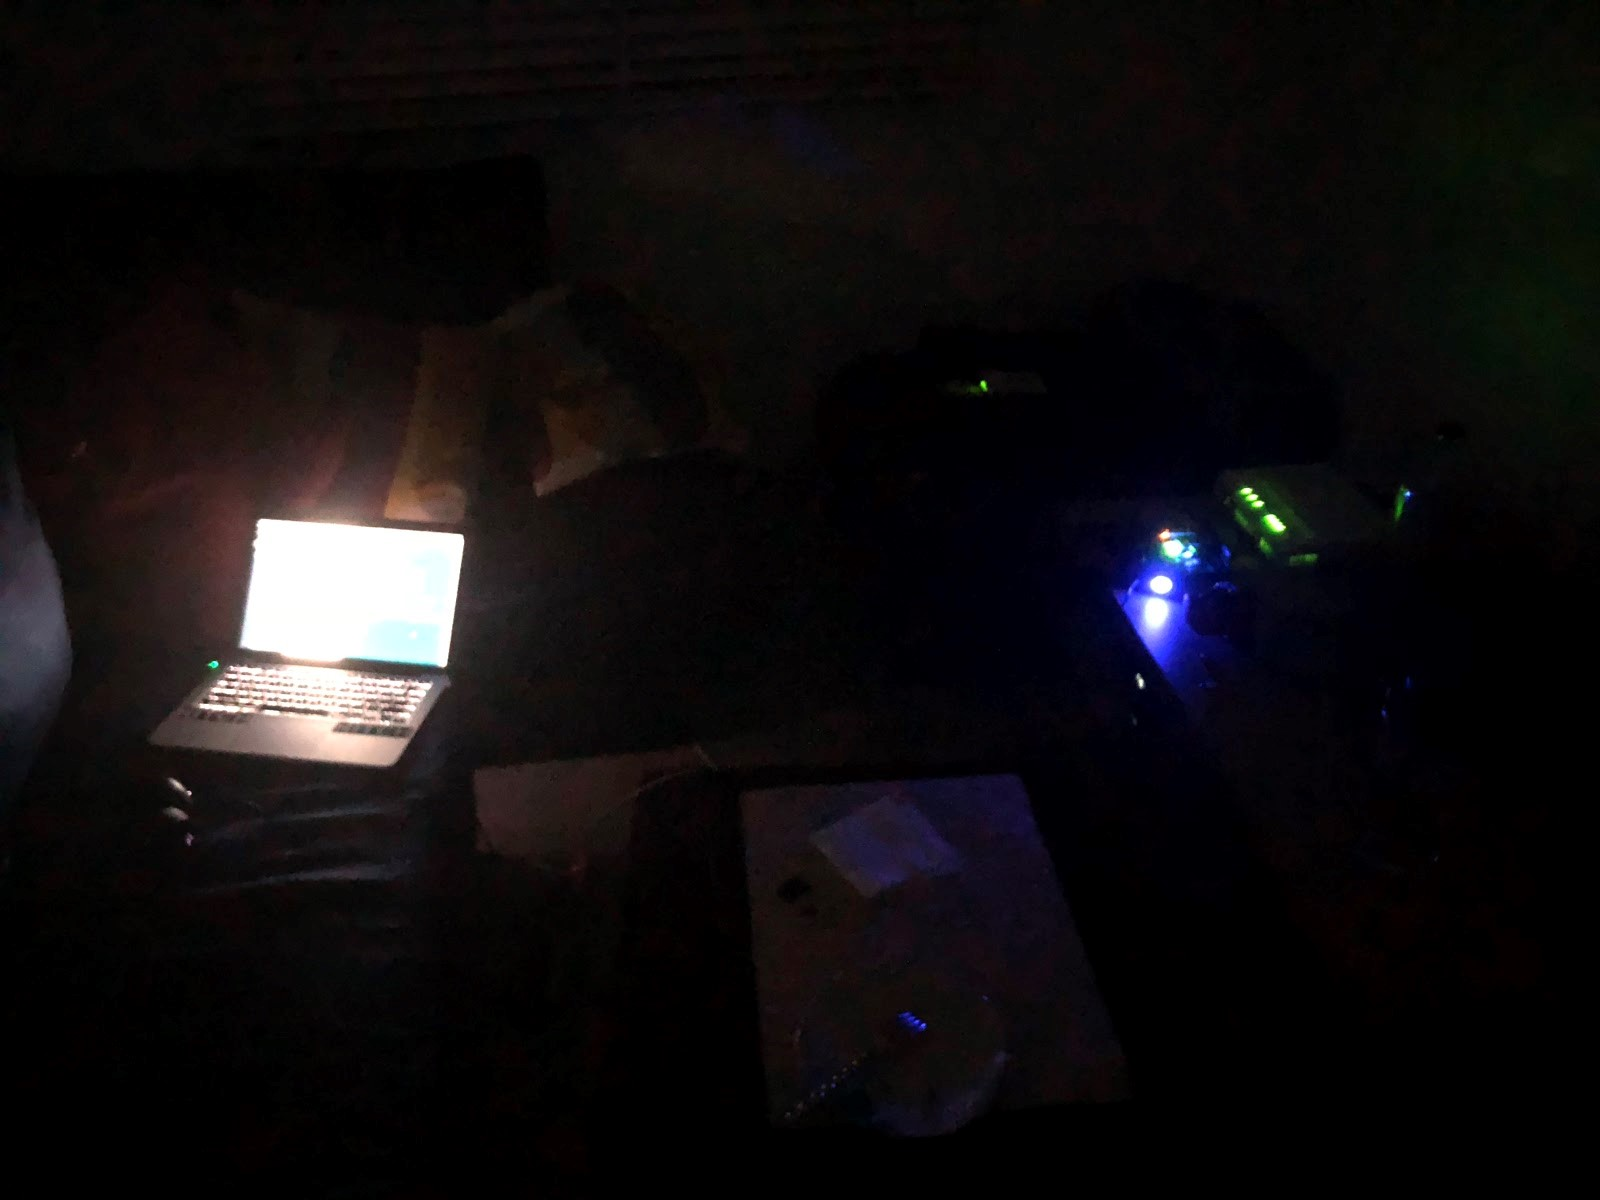 This is a picture of the HITCH team attempting to troubleshoot and resolder wires in the dark while the power was out.